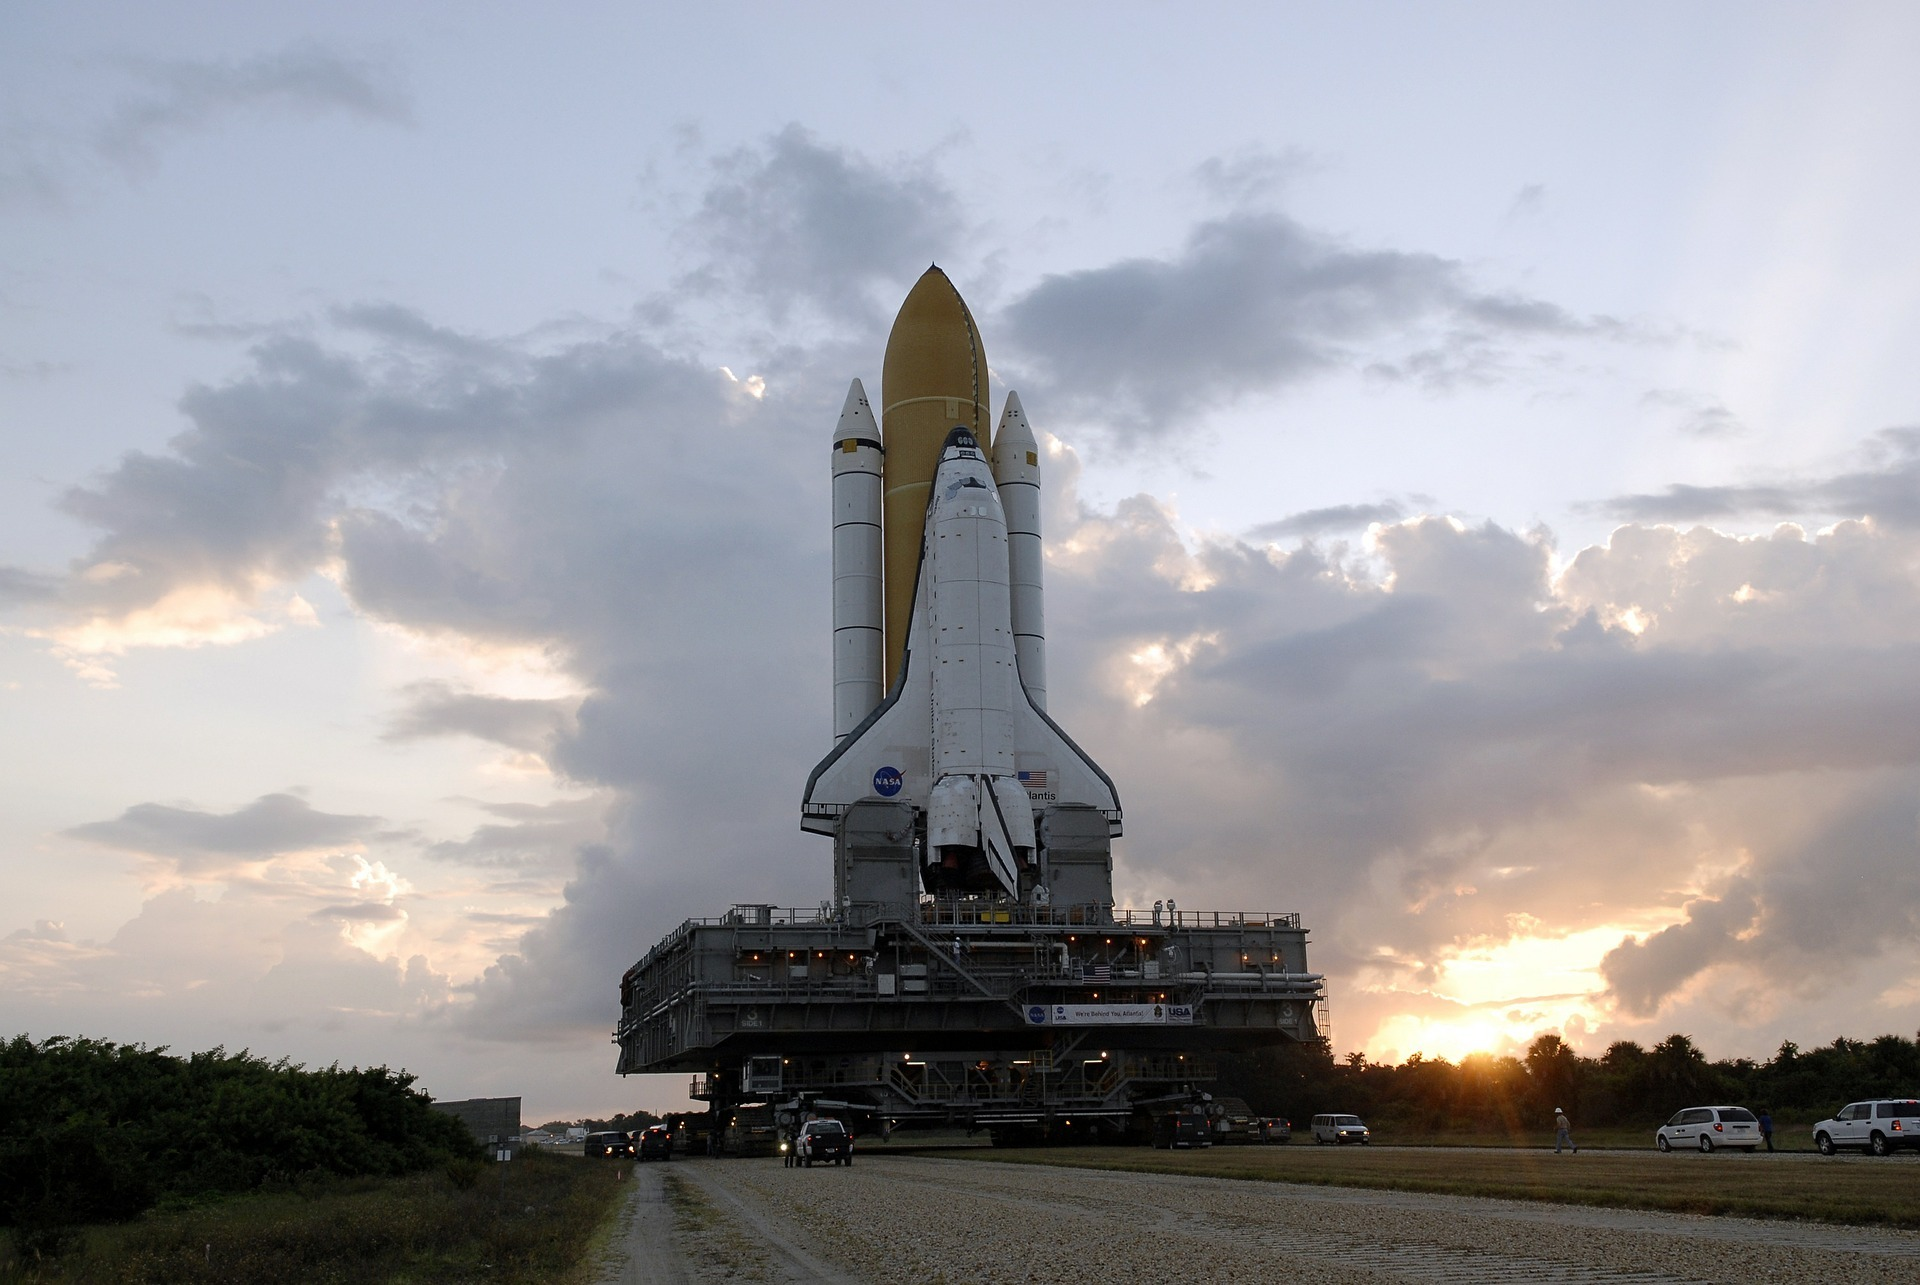 2017 newest space shuttle - photo #19